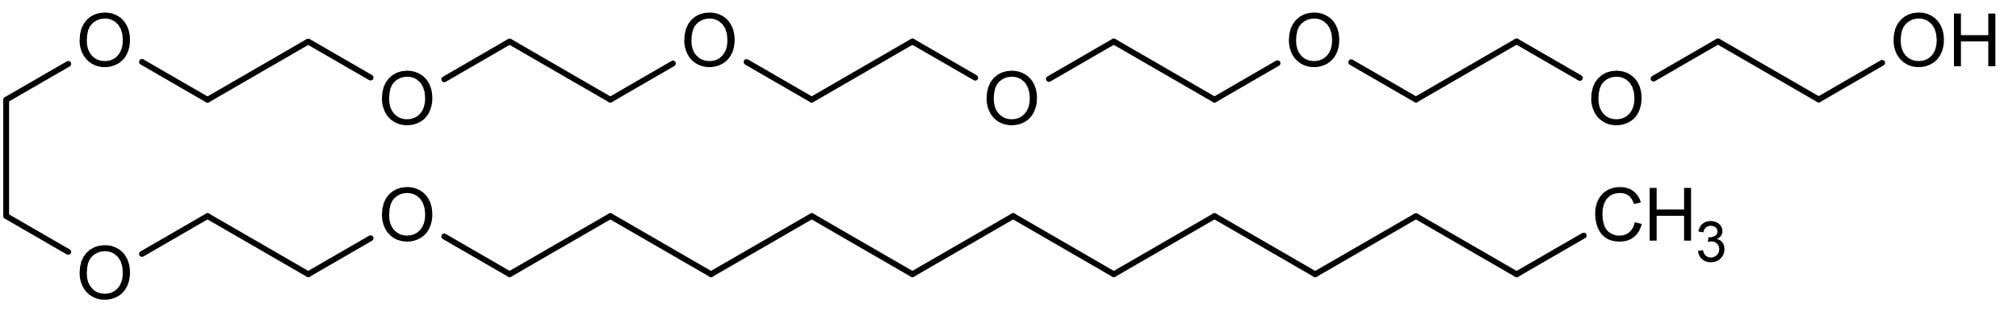 Chemical Structure - C12 E8 solution, Non-ionic detergent (ab146285)